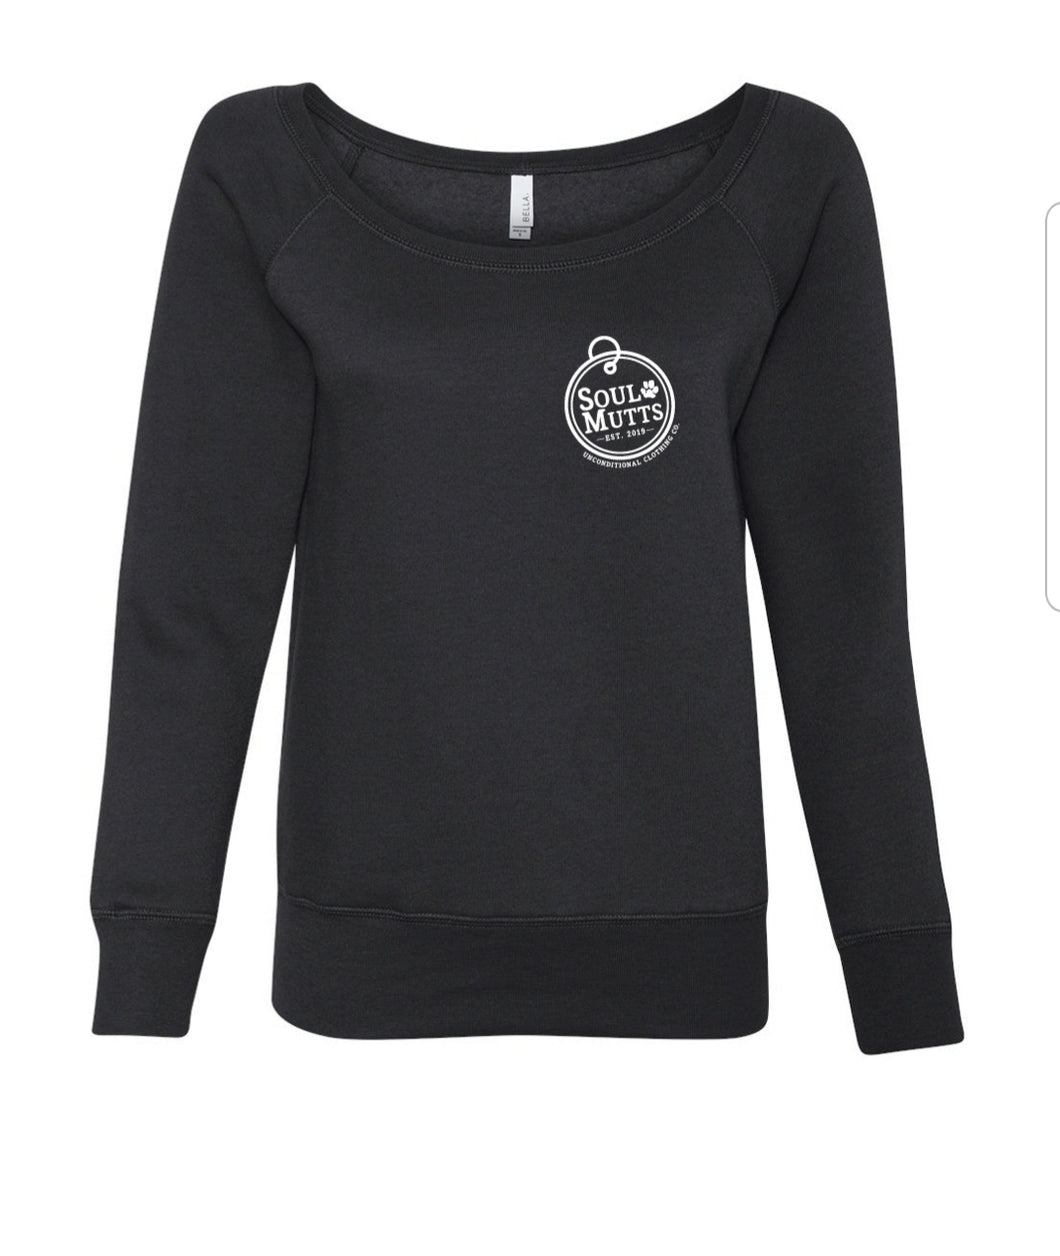 Women's wide neck sweatshirt